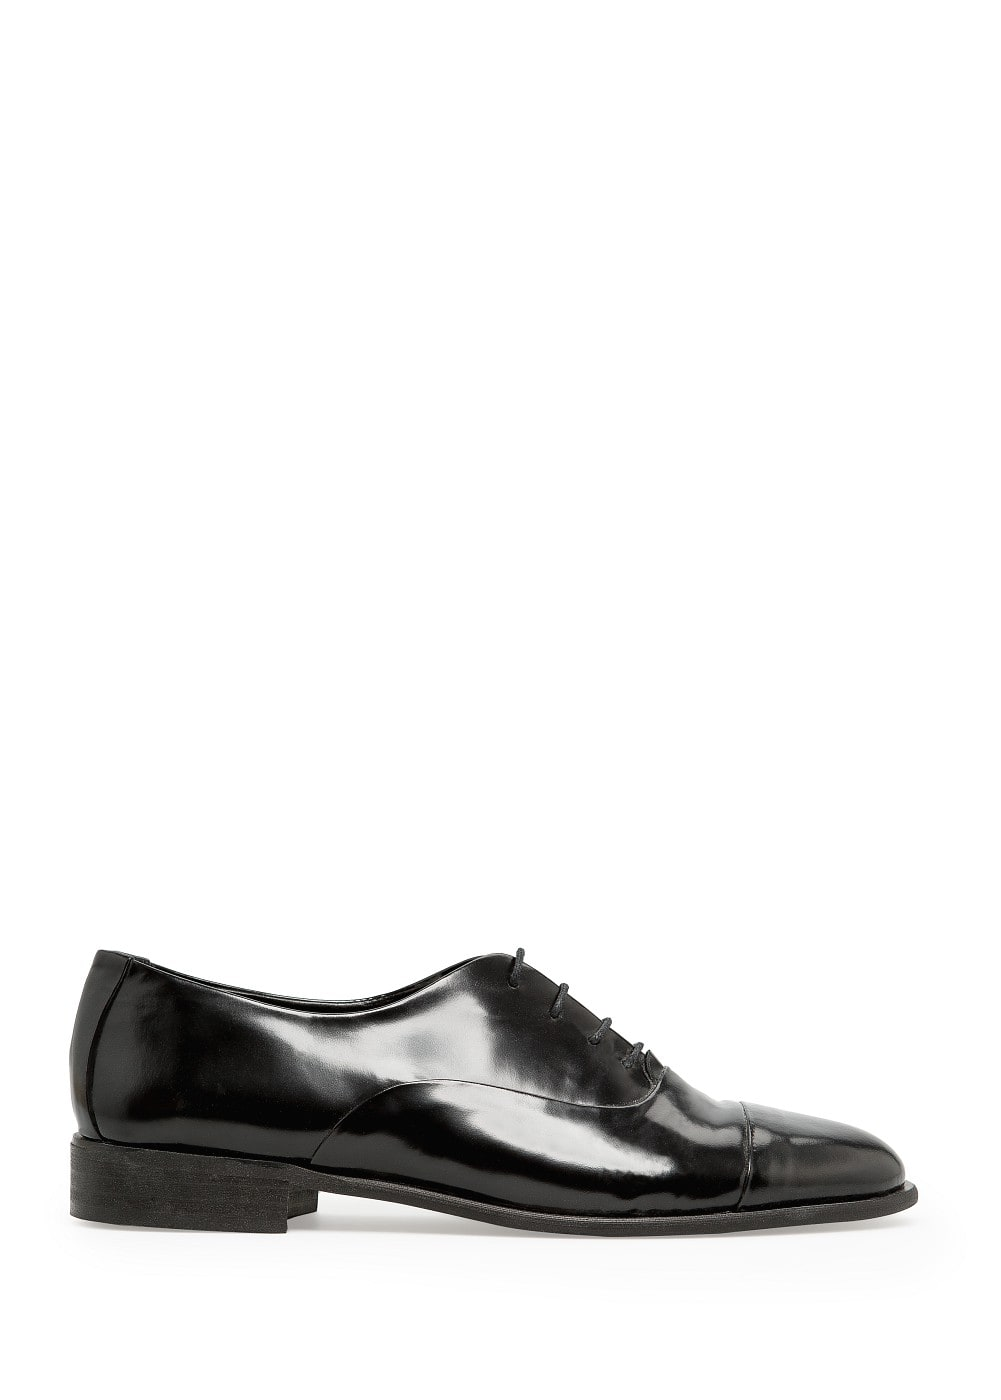 Glossed leather oxford shoes